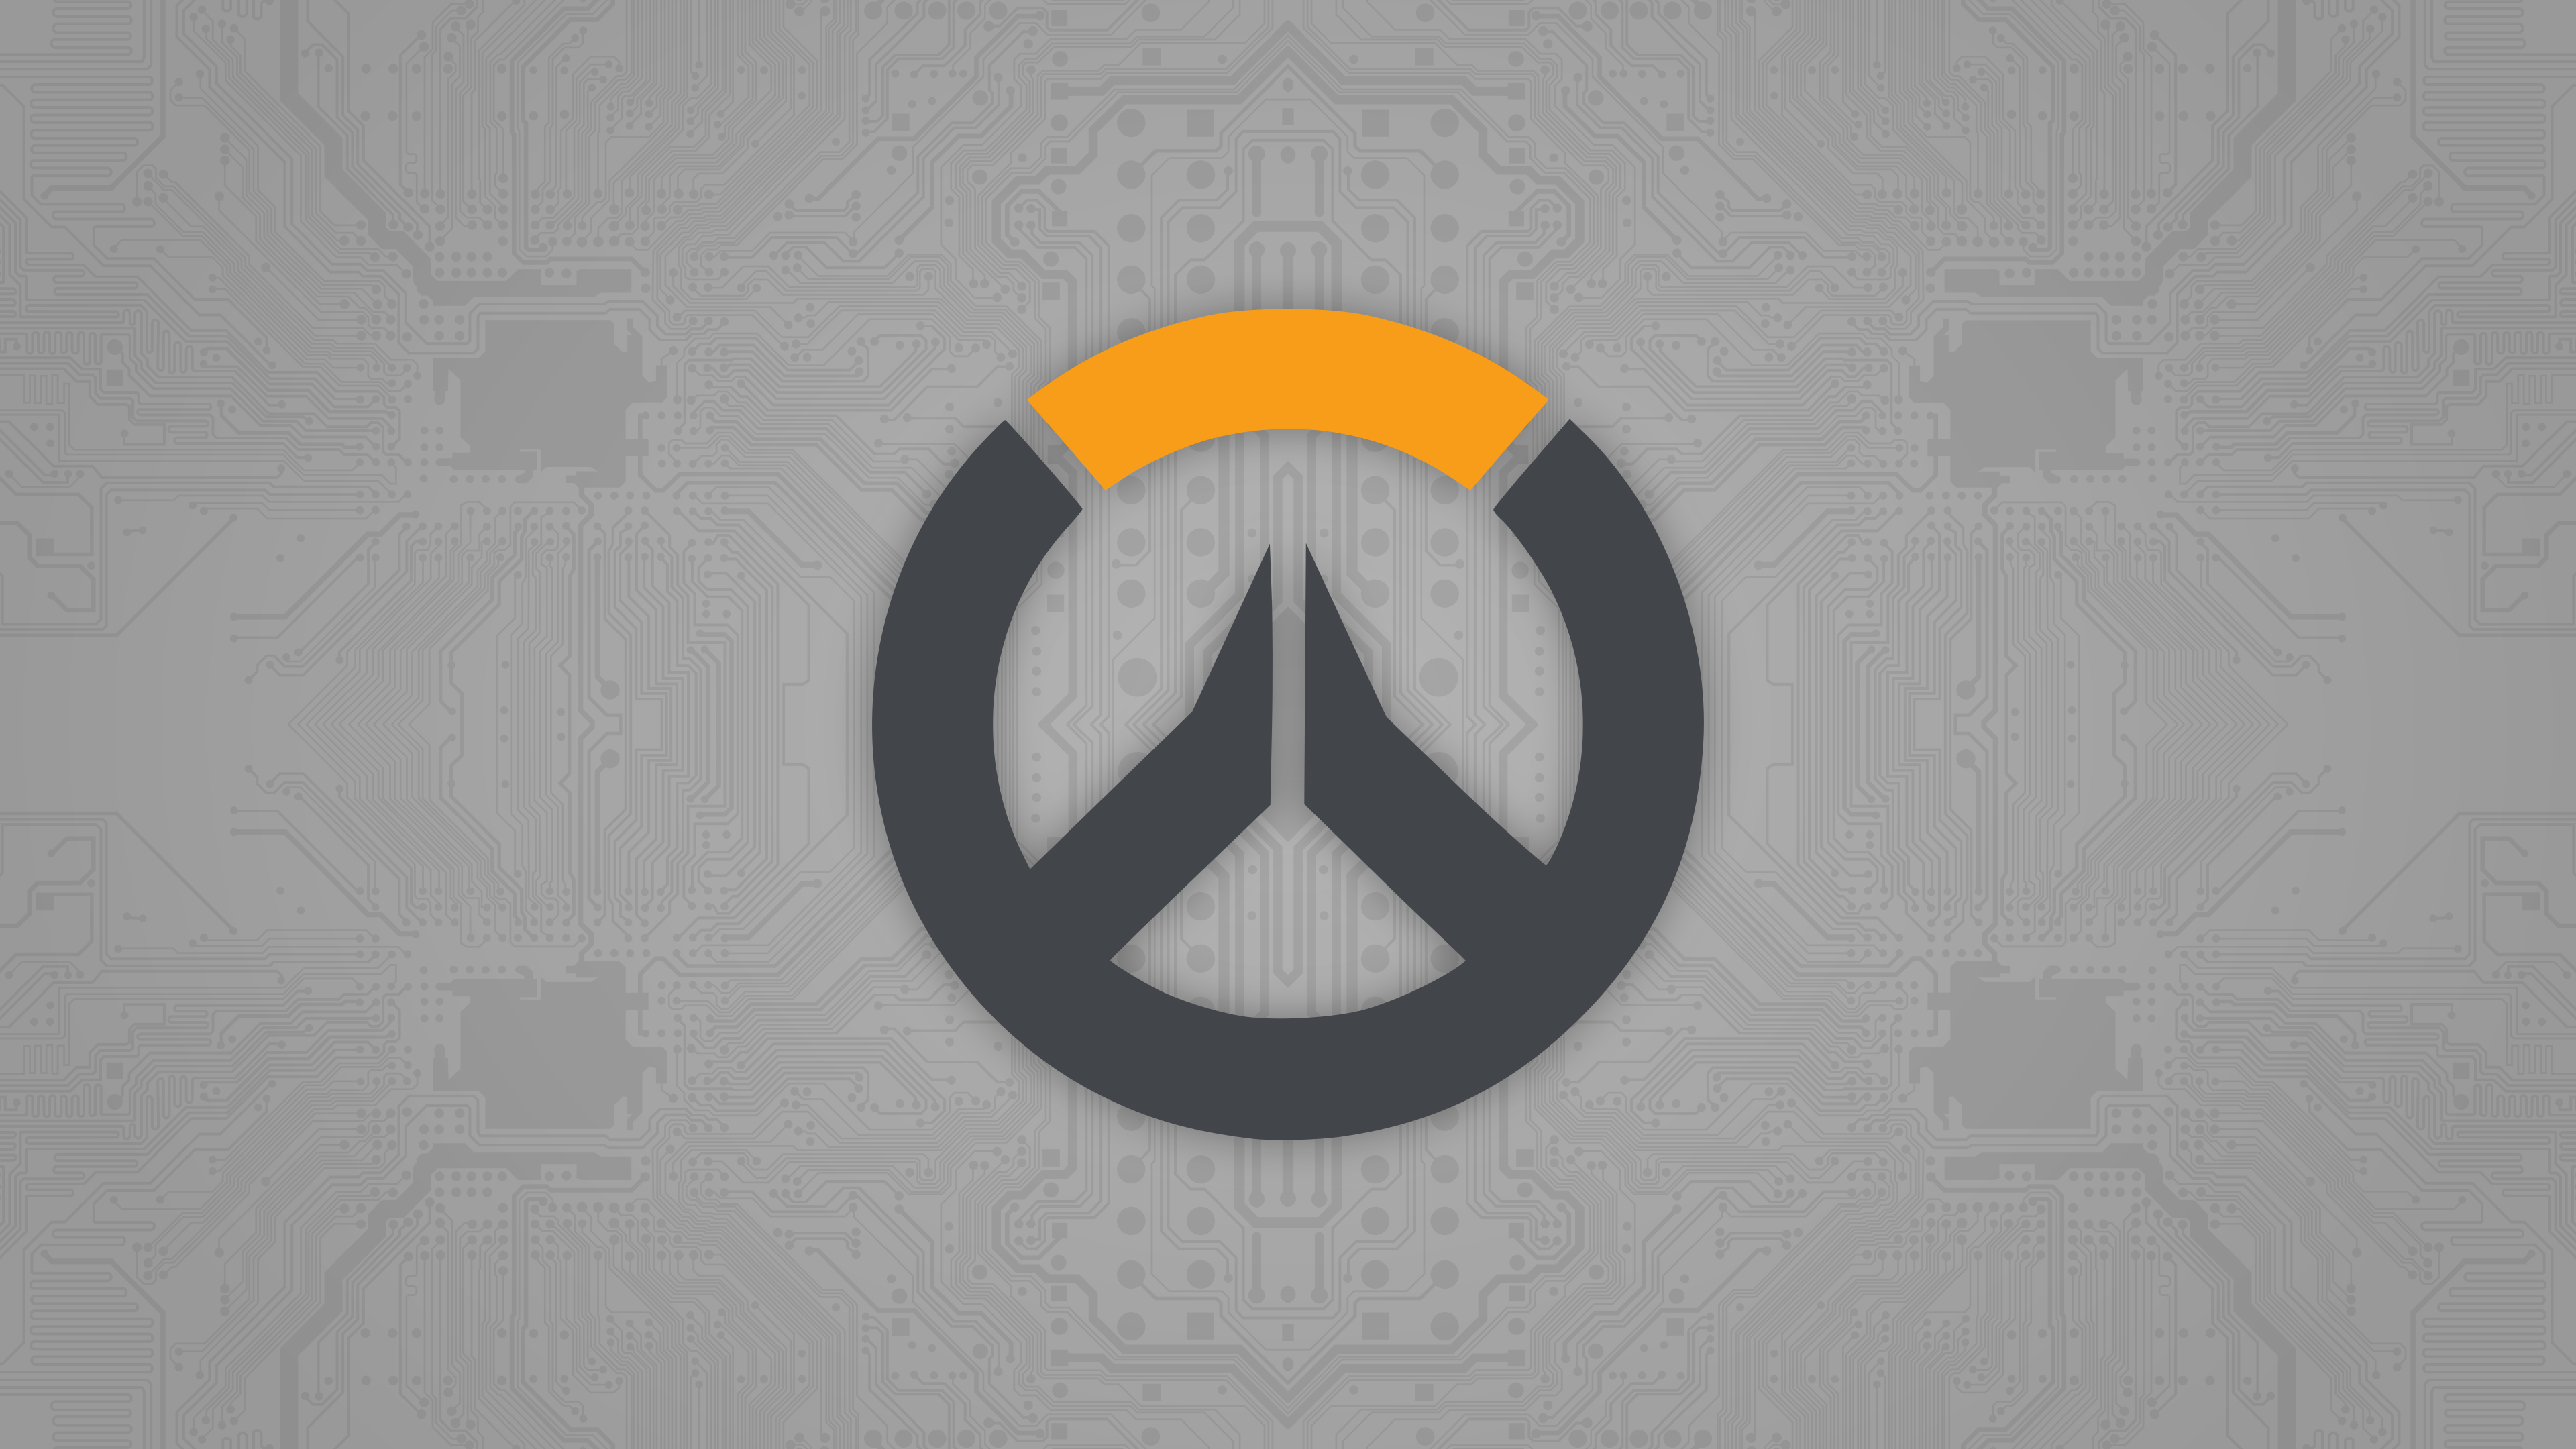 Overwatch wallpaper 4k by thepi7on on deviantart - Overwatch wallpaper 4k ...